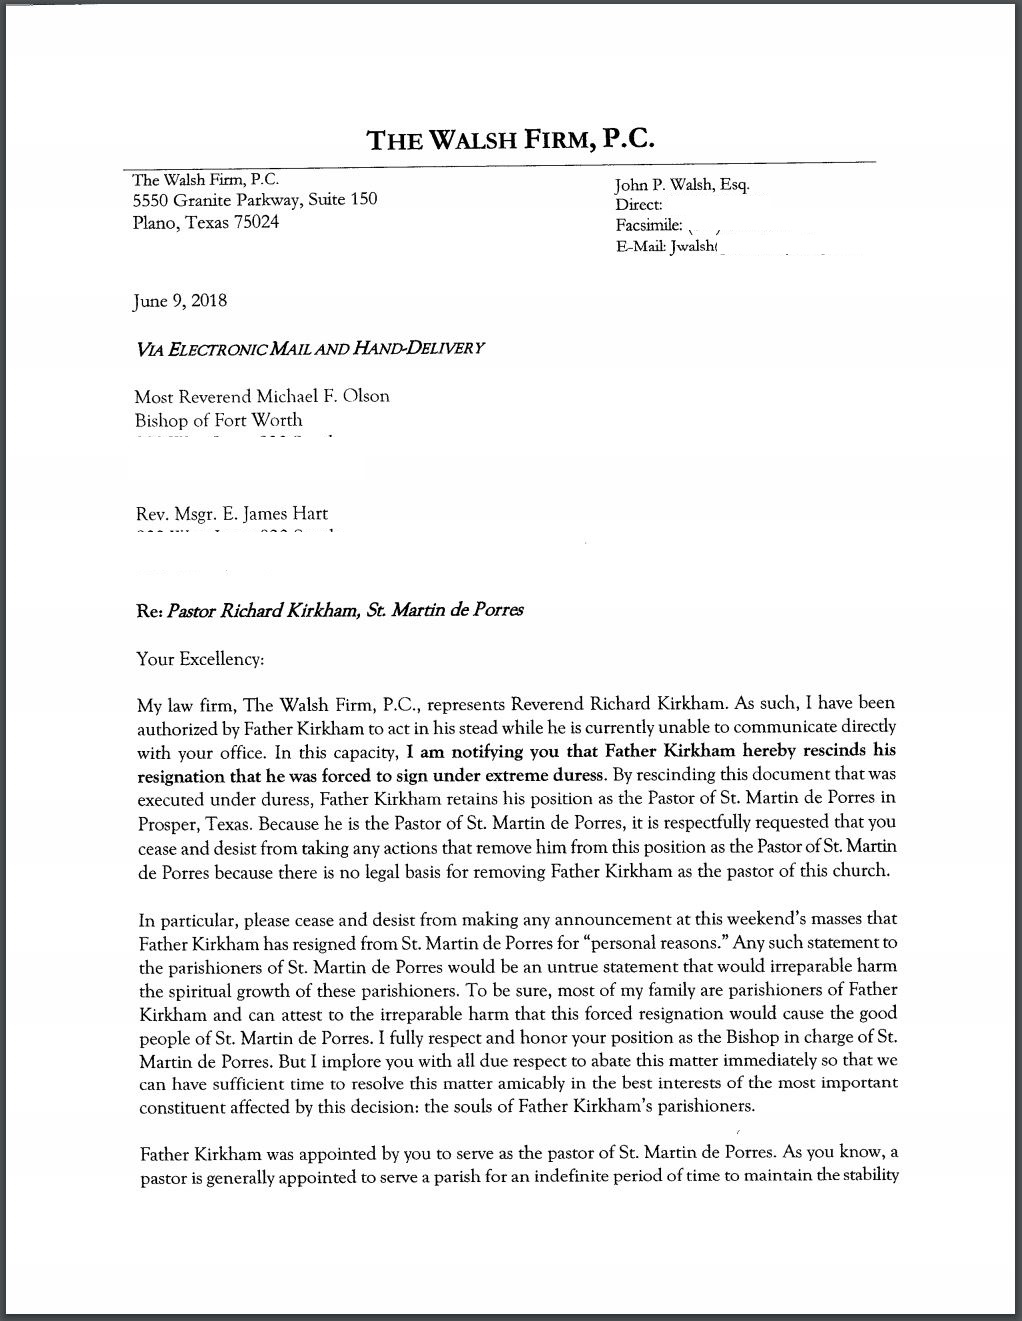 Letter Rescinding Fathers Resignation Frk Advocates